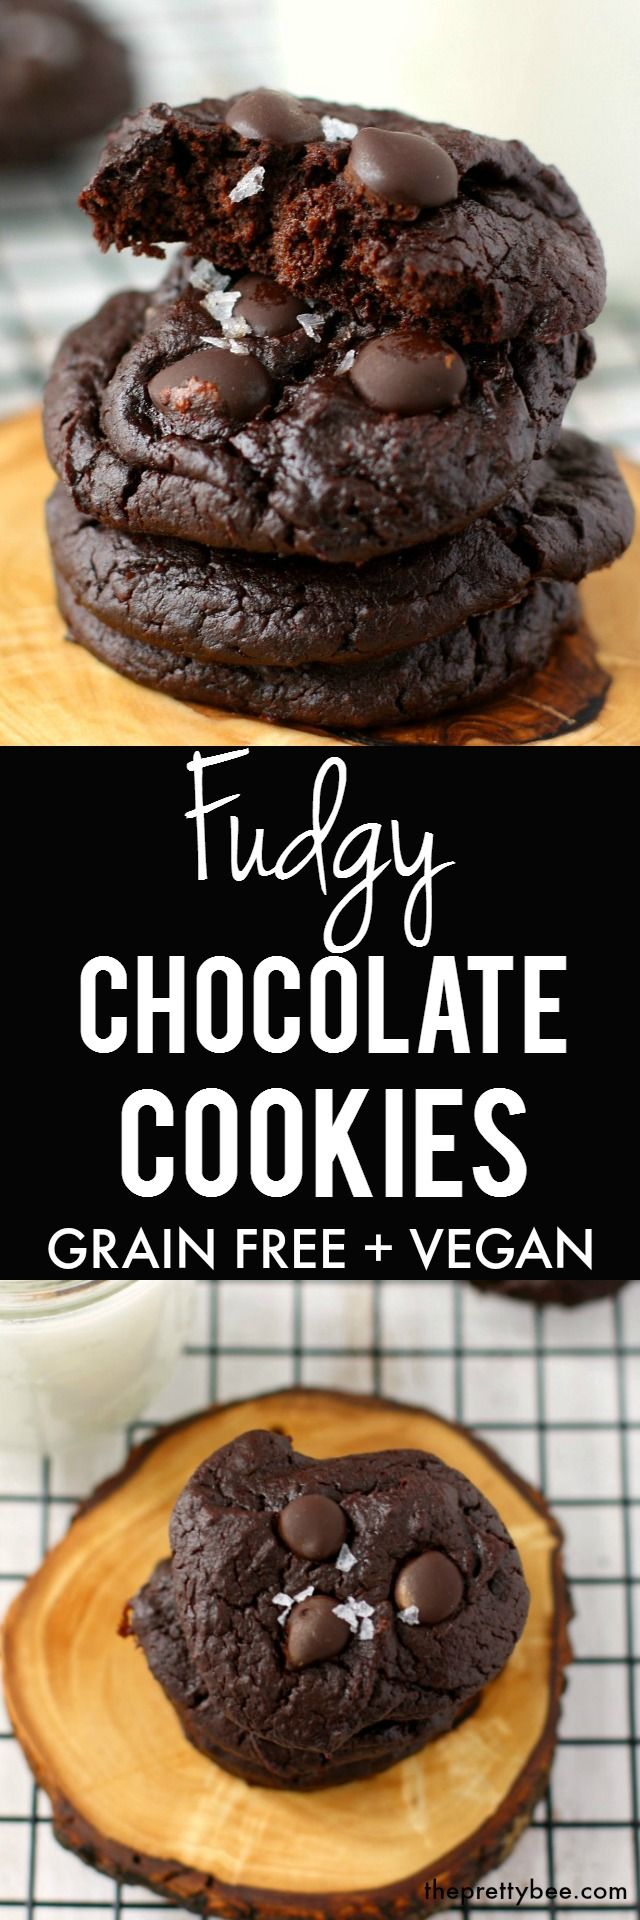 Grain free fudgy chocolate cookies with a secret ingredient! Your family will love these chocolatey treats.